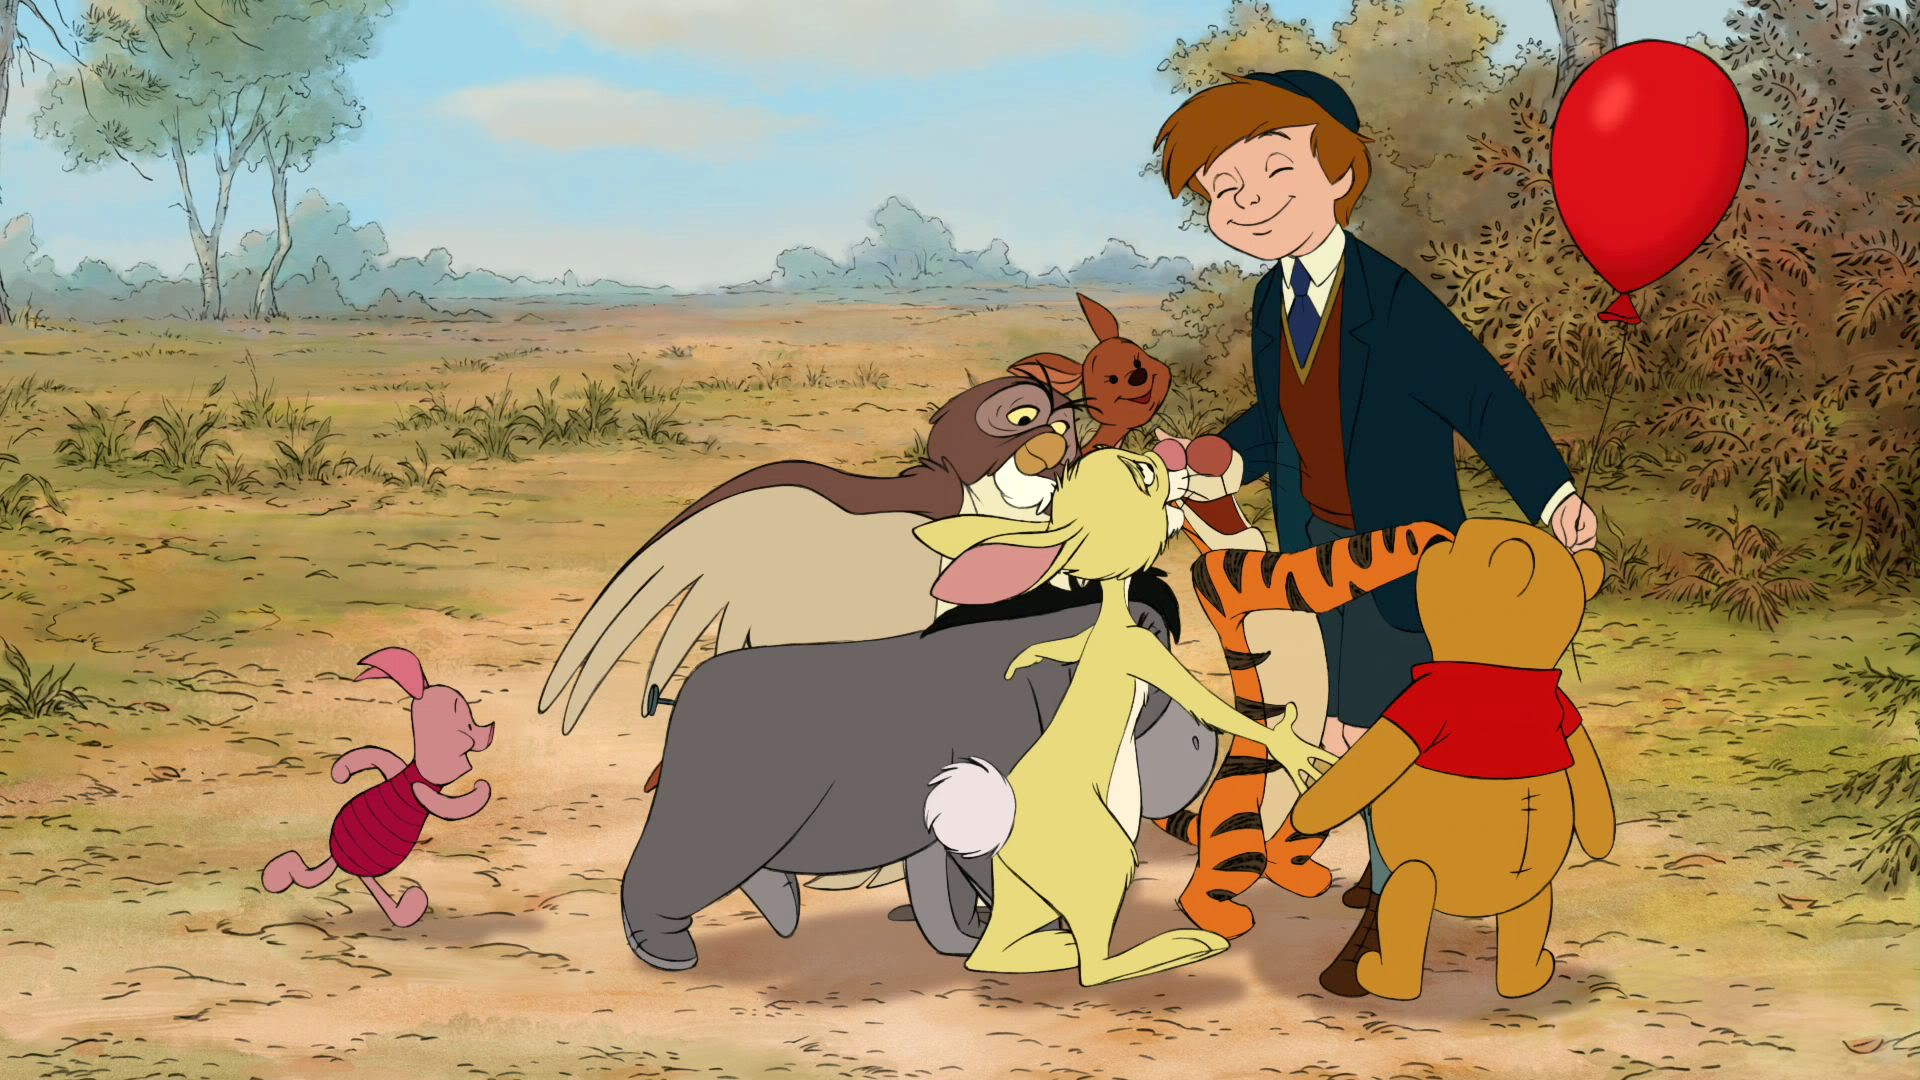 Winnie the pooh quotes voltagebd Image collections